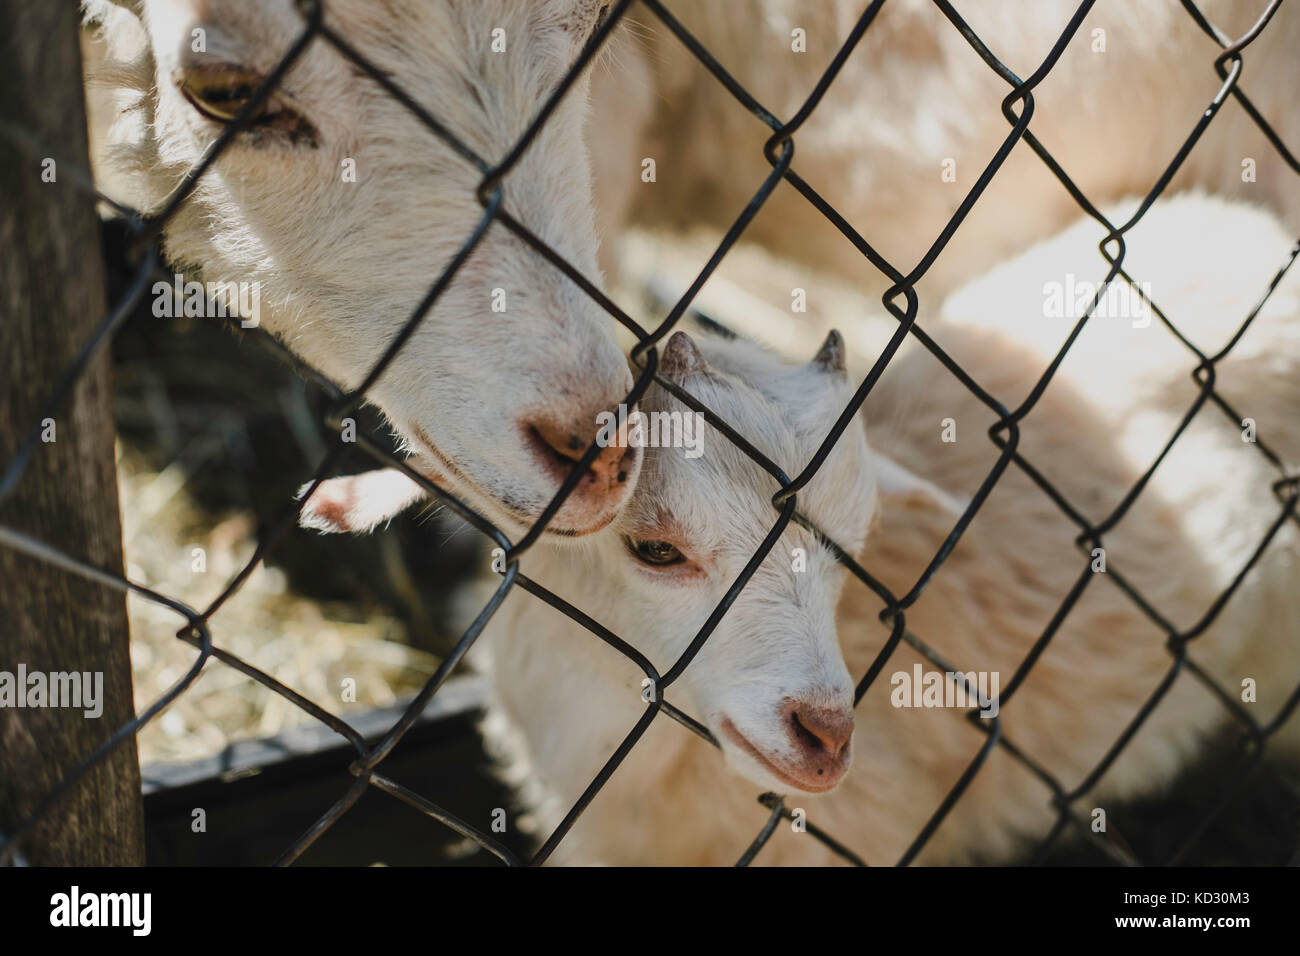 Mother goat and kid at wire fence - Stock Image